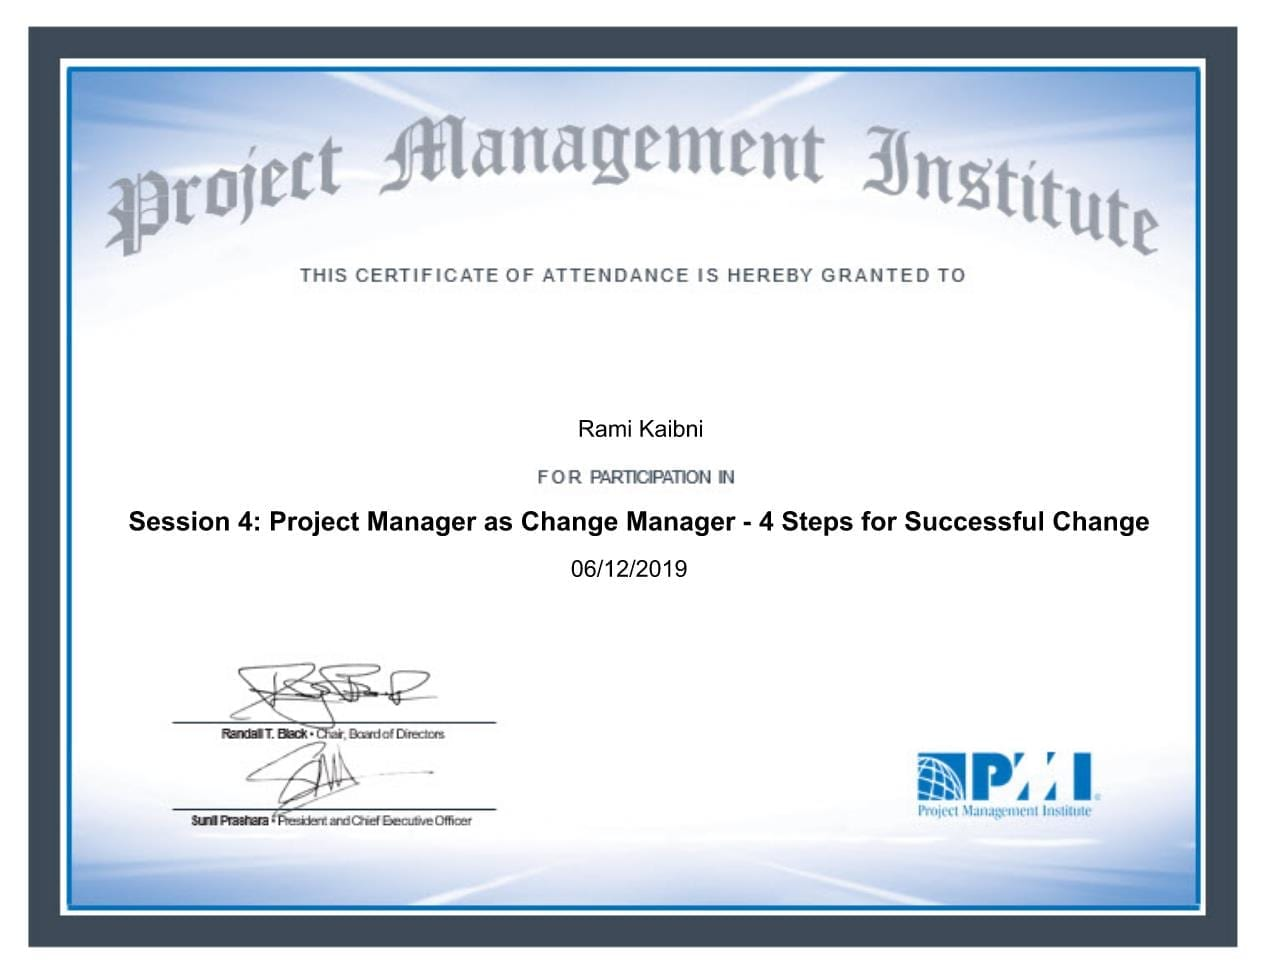 Project Manager as Change Manager